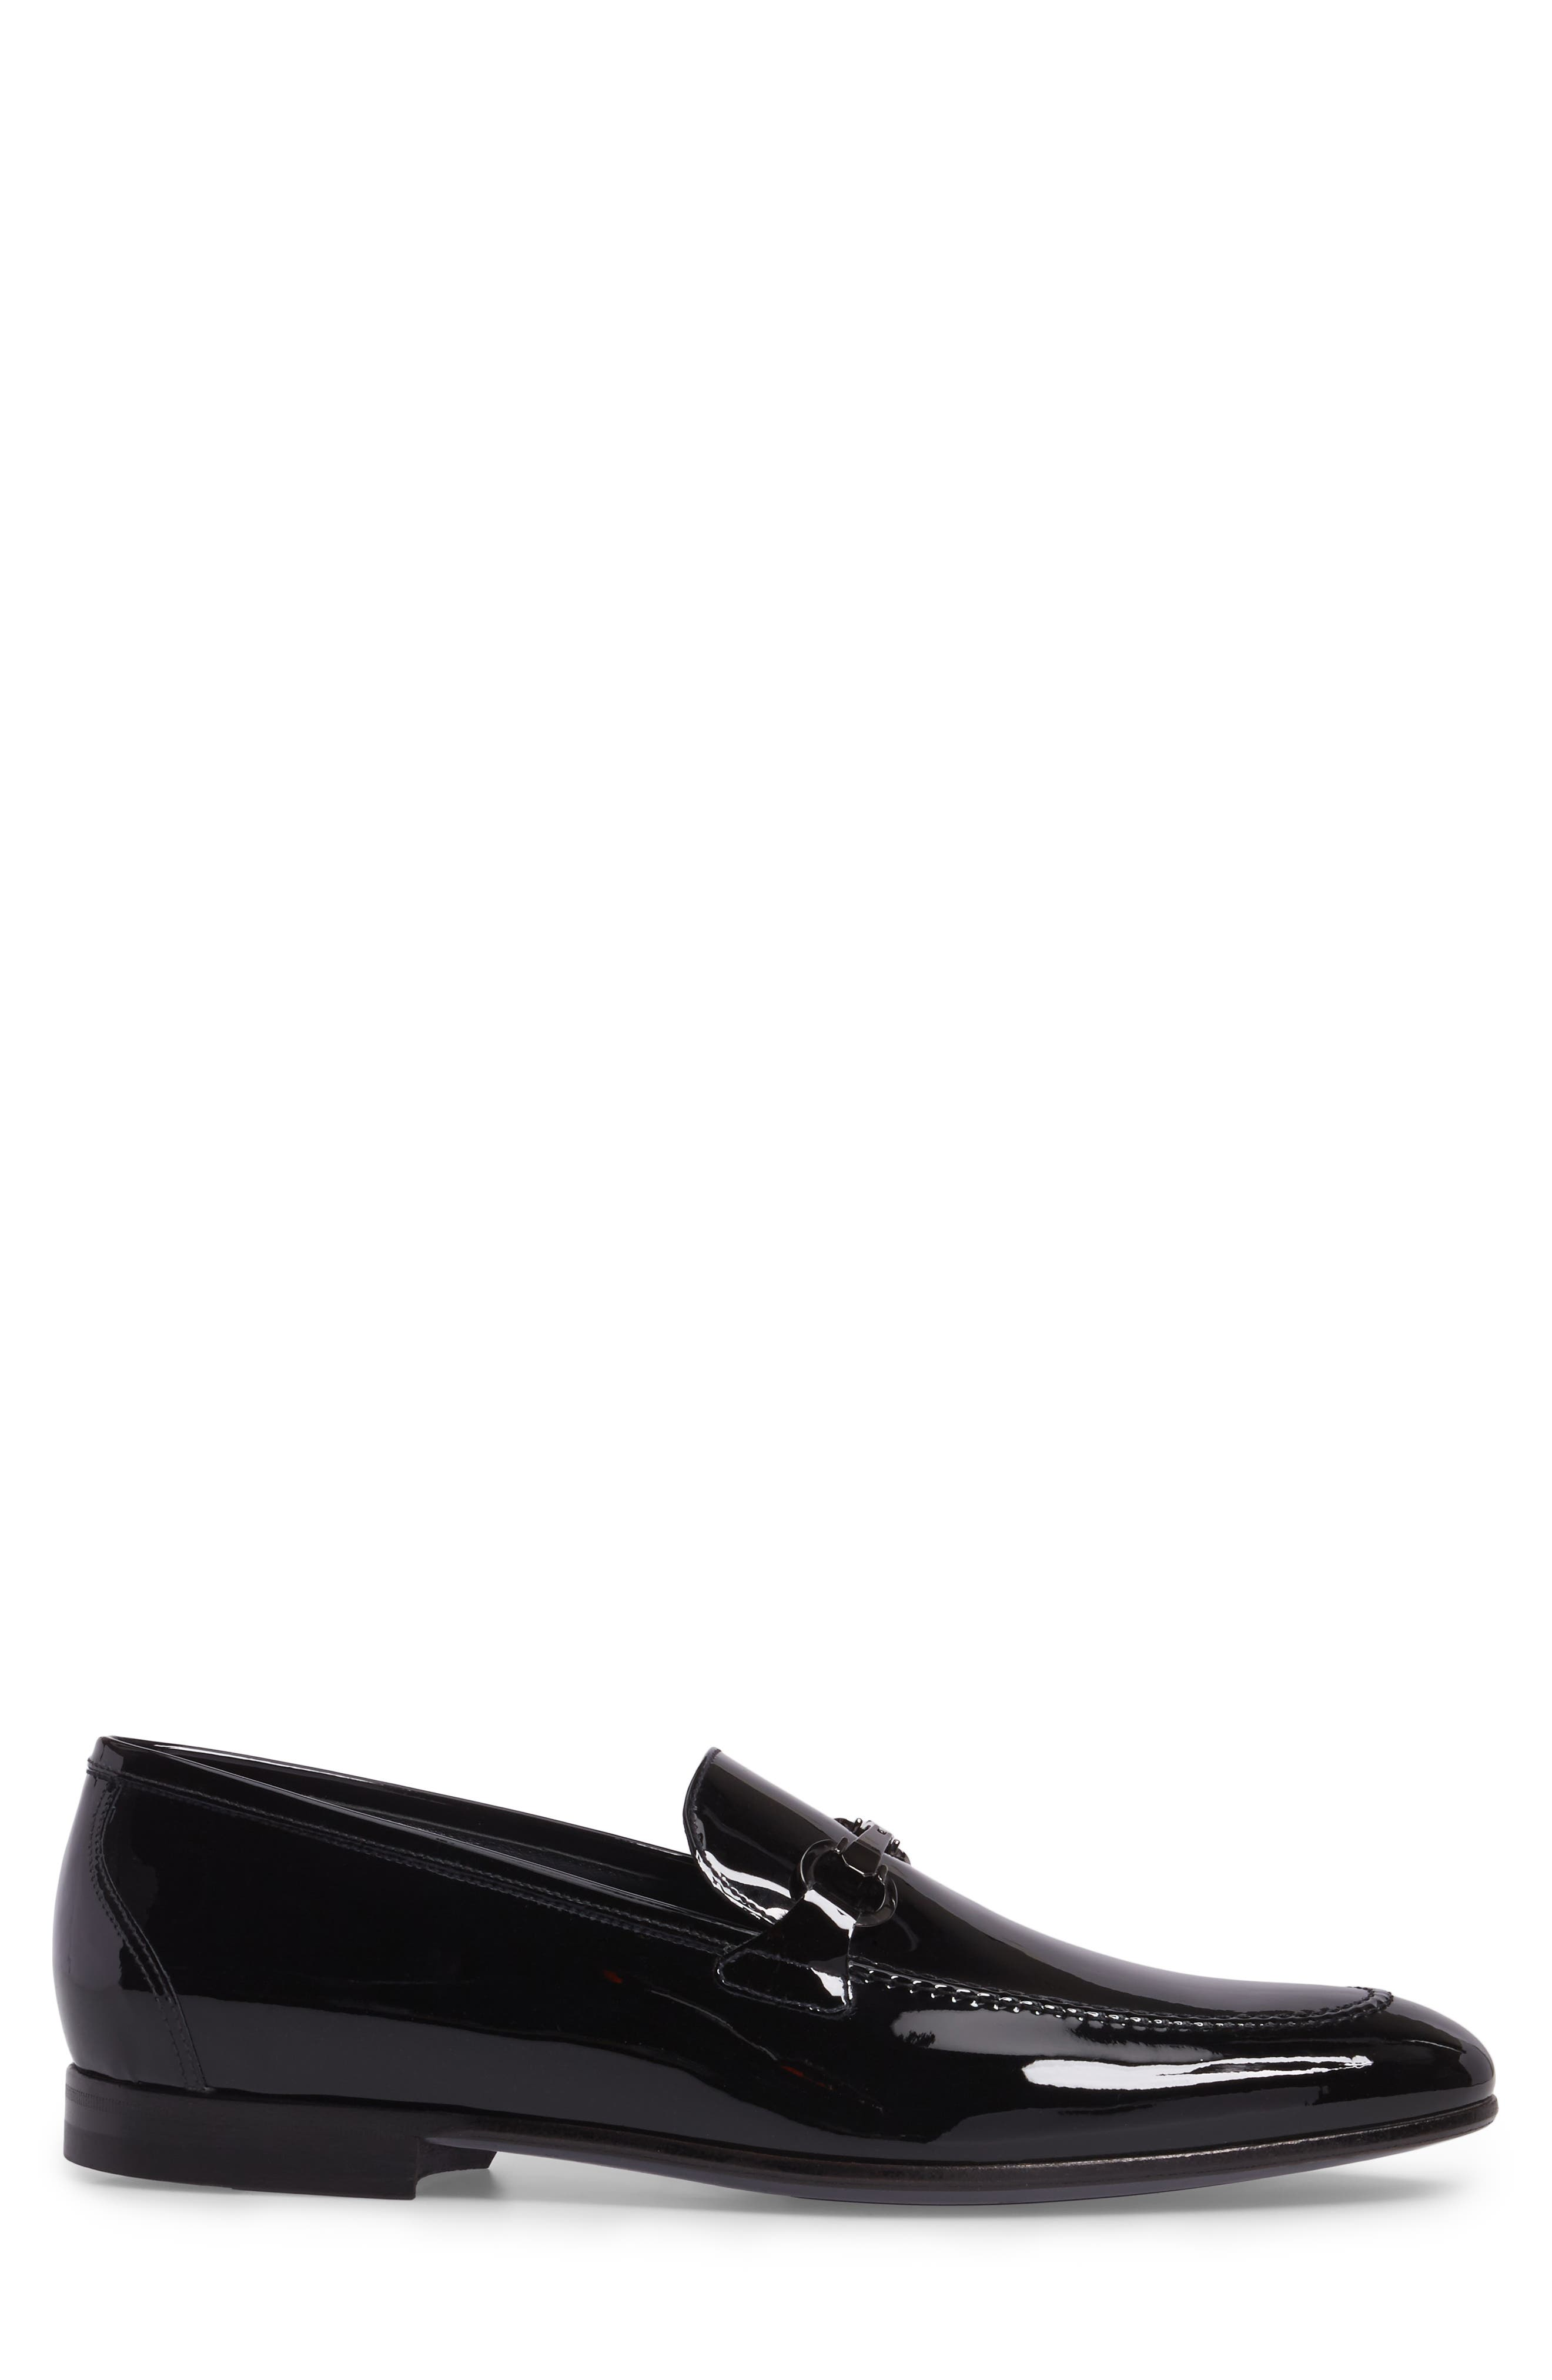 Brianza Bit Loafer,                             Alternate thumbnail 16, color,